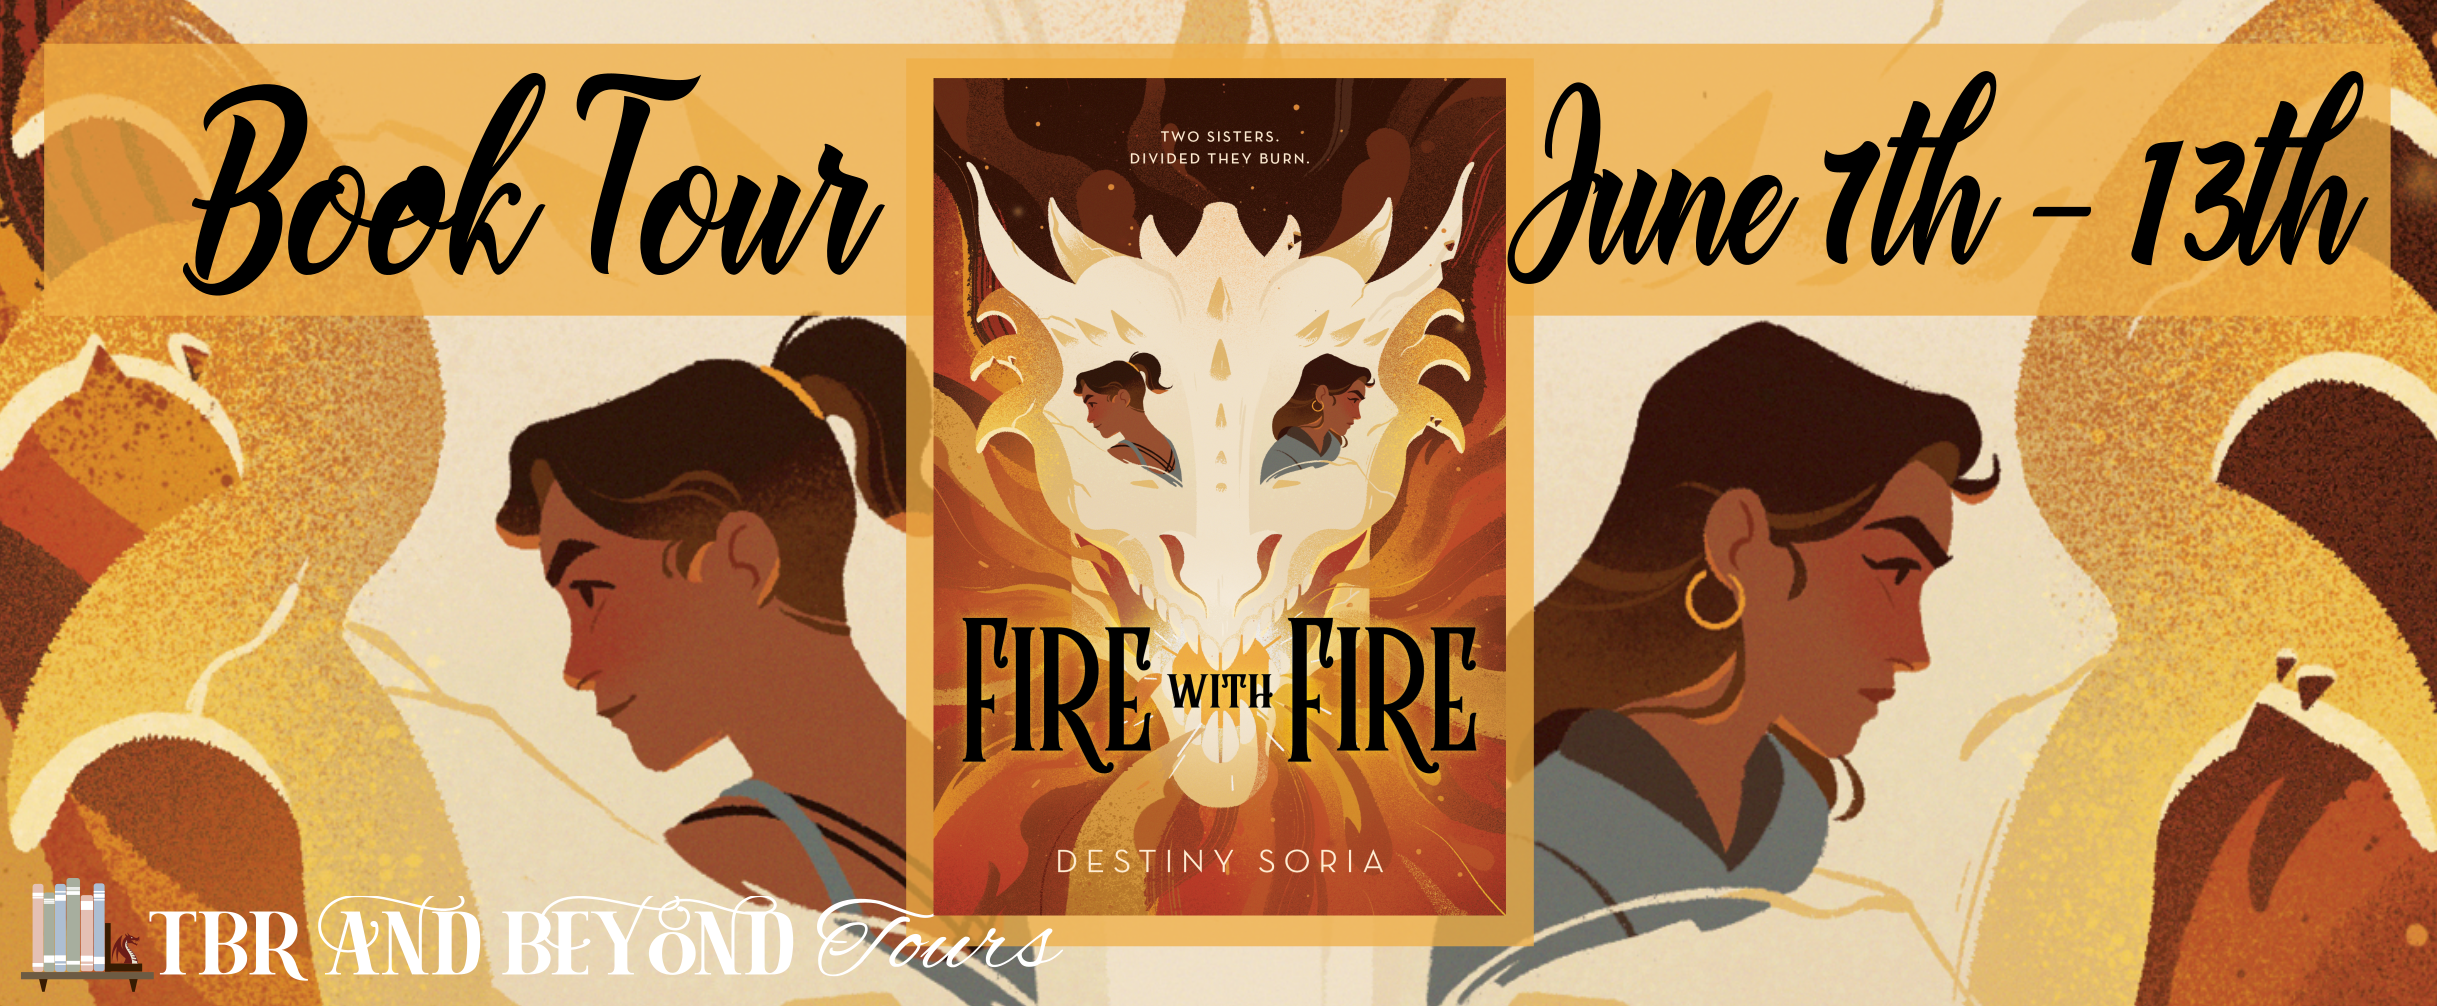 Blog Tour: Fire with Fire by Destiny Soria (Spotlight + Giveaway!)